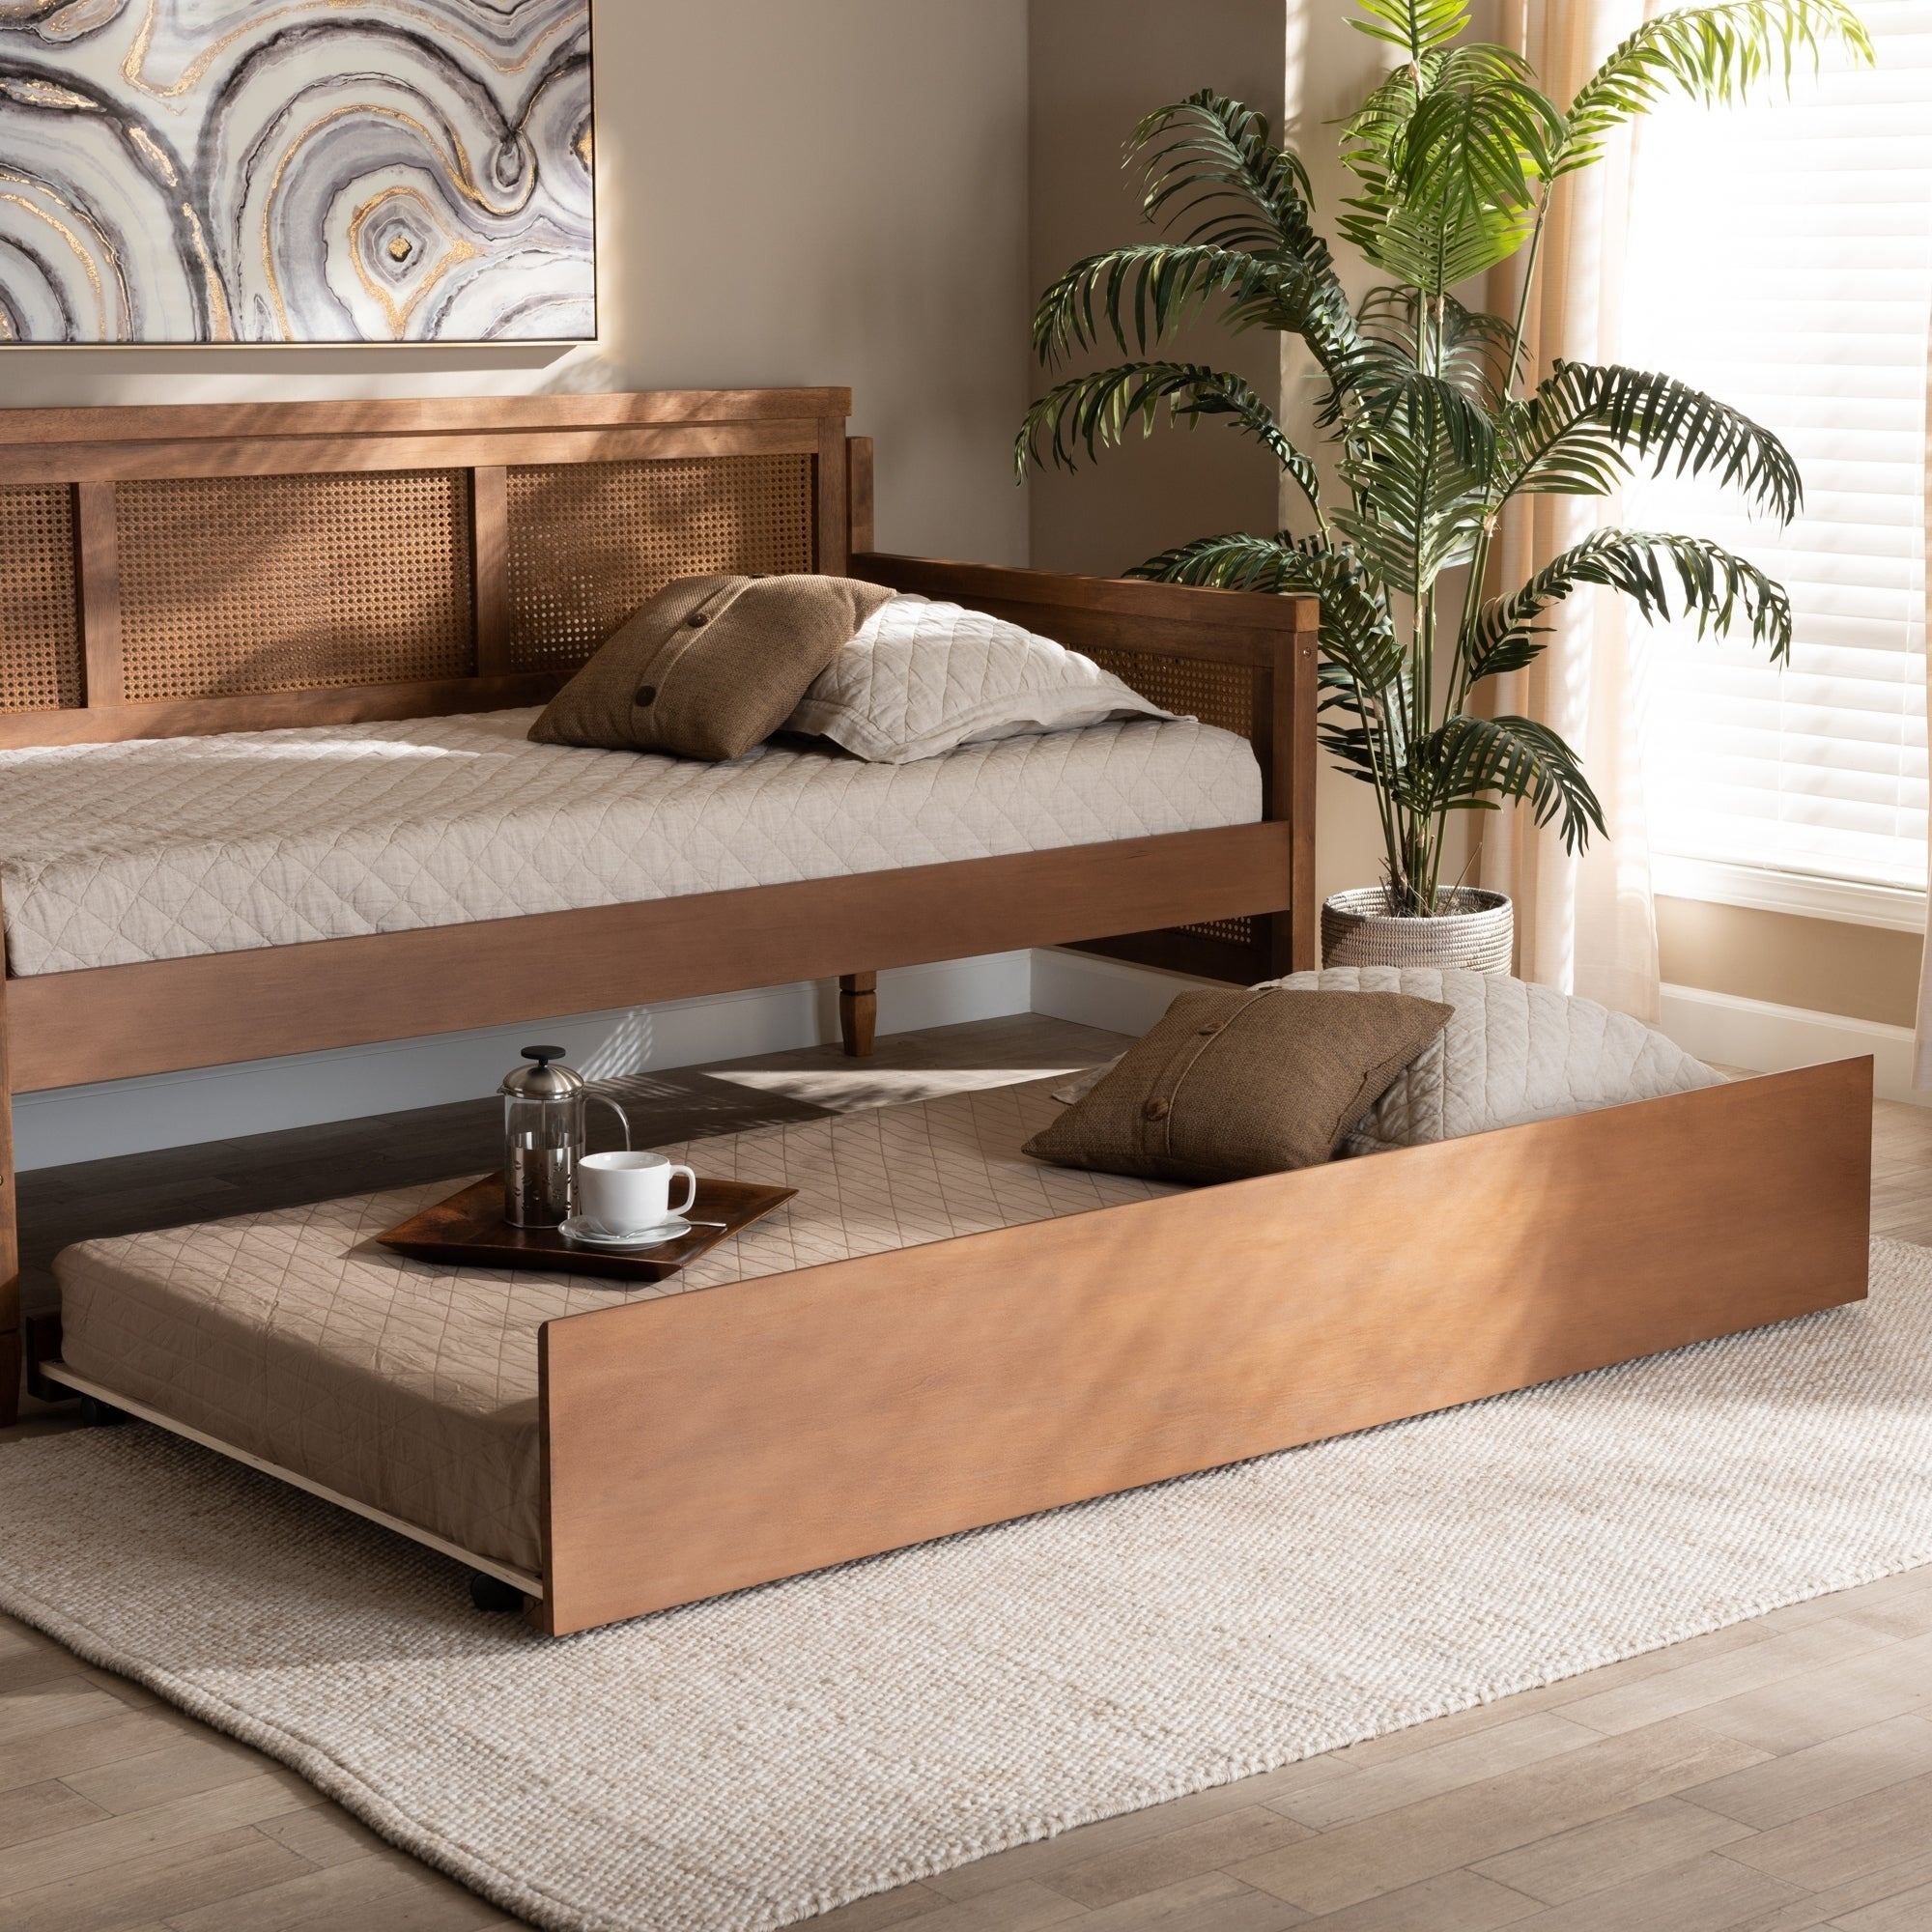 Picture of: Toveli Modern And Contemporary Trundle Bed Overstock 29094979